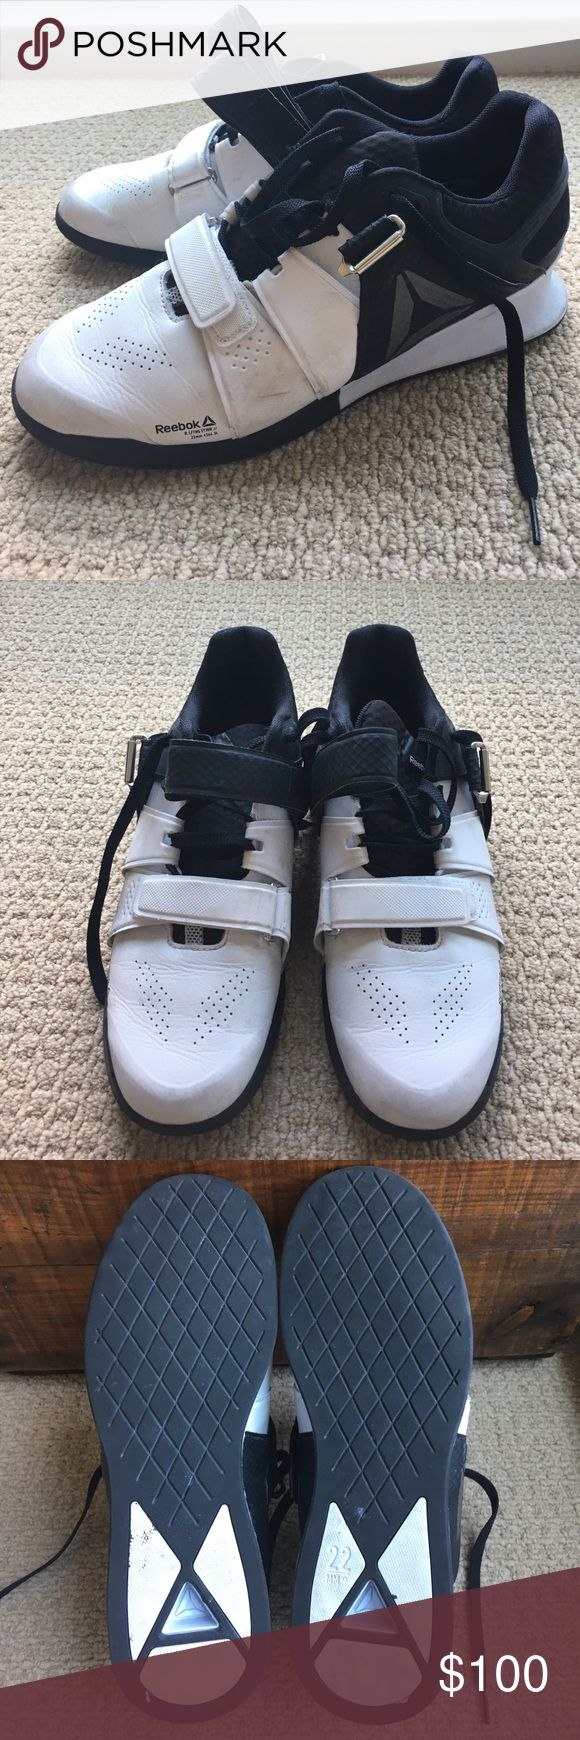 Mens 10.5 Reebok CrossFit/Powerlifting/Oly Lifters Excellent used condition. White with black details. Men's size 10.5 Reebok Legacy lifting shoes. Reebok Shoes Athletic Shoes